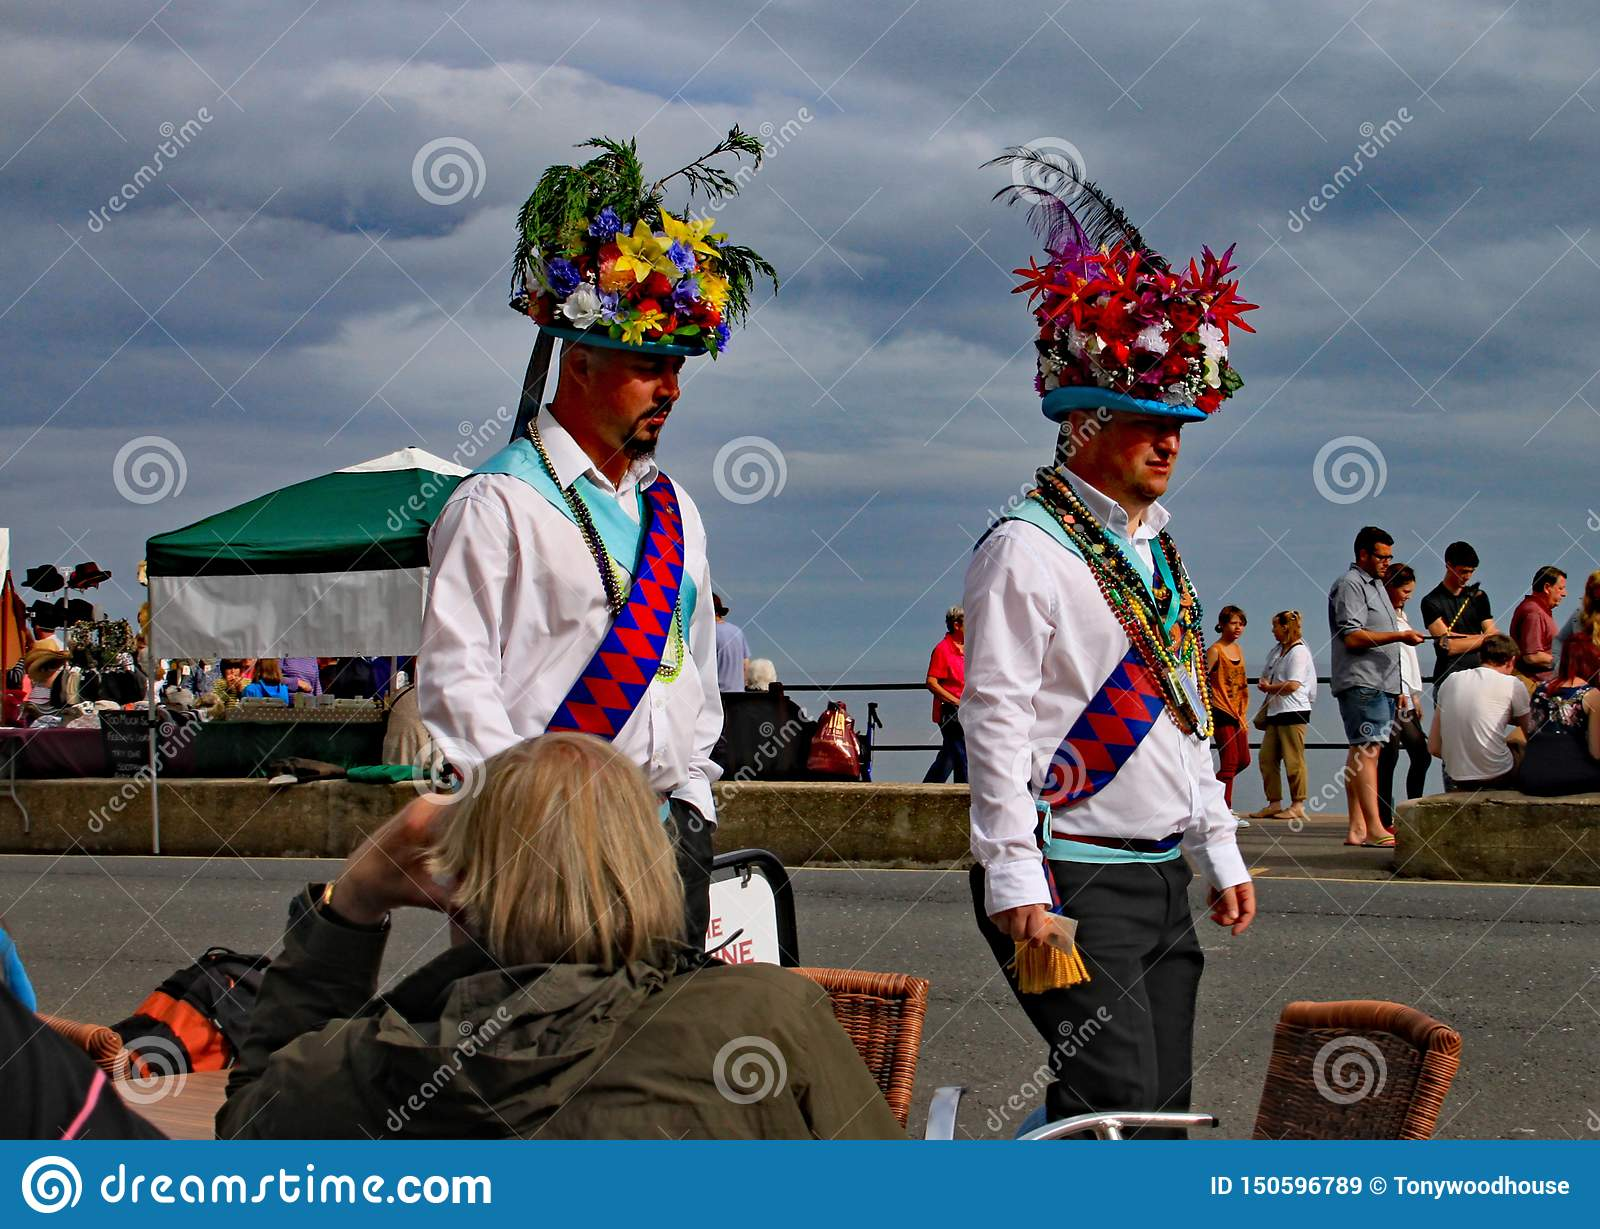 SIDMOUTH, DEVON, ENGLAND - AUGUST 8TH 2012: Two Morris dancers in extravagant head gear walk along the Esplanade during folk week